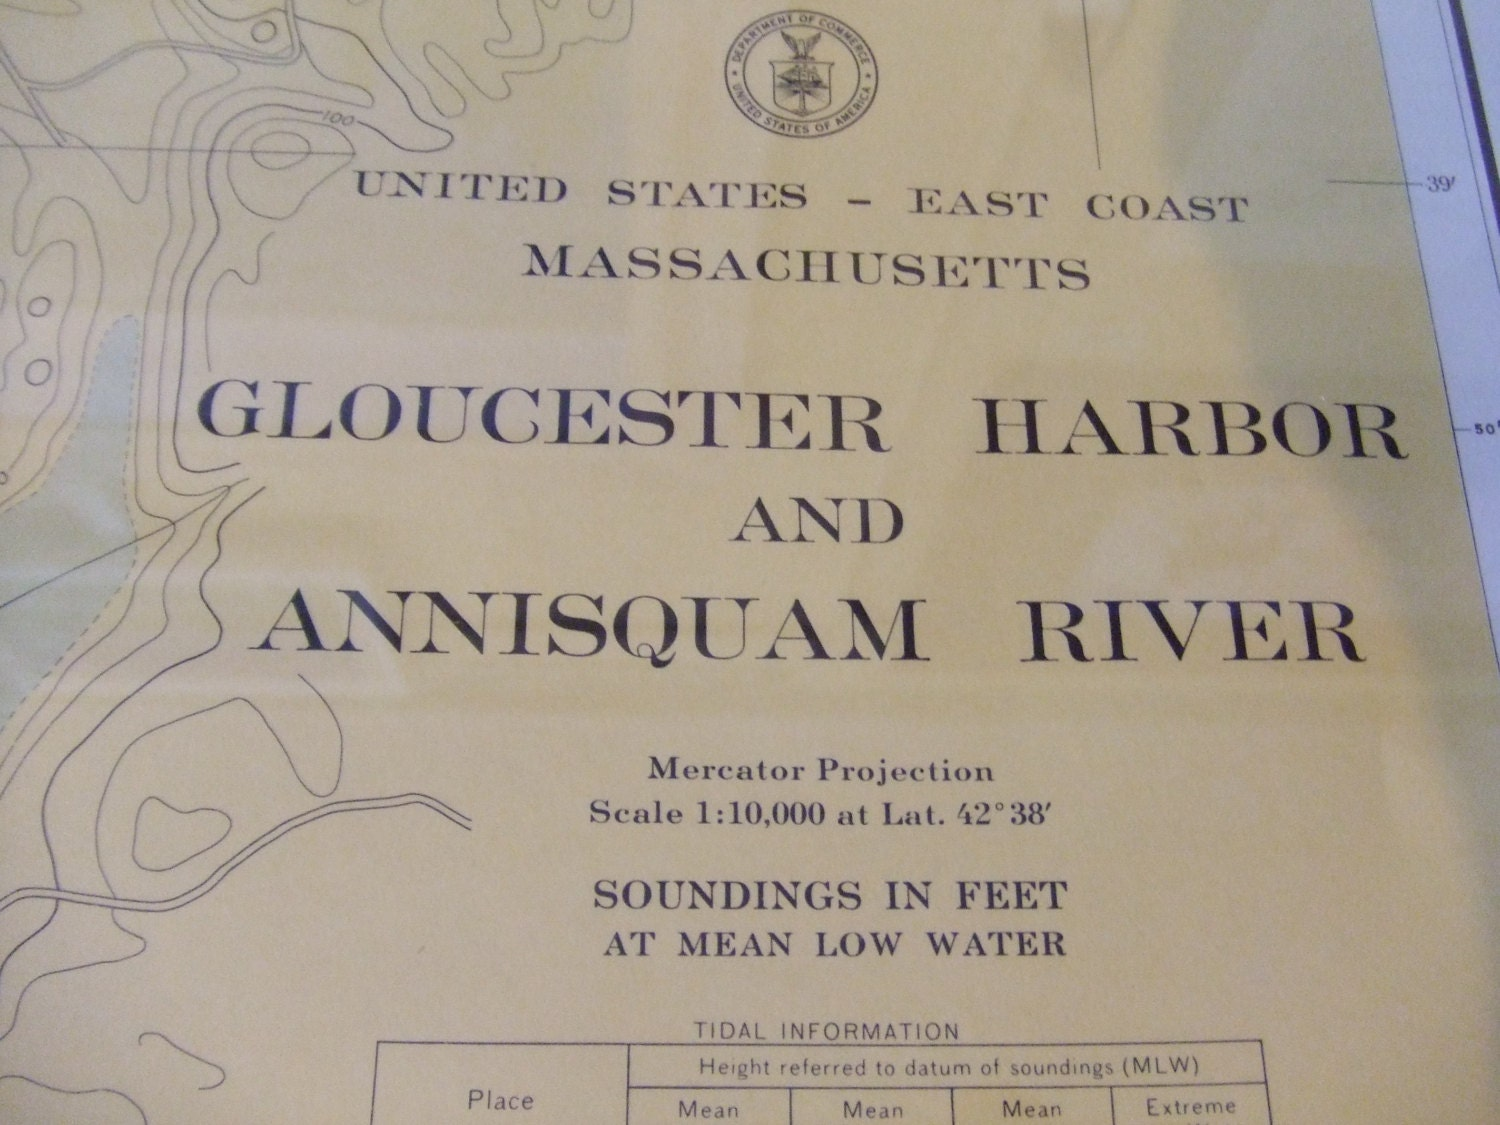 Gloucester harbor and annisquam river massachusetts east coast sold by northernboater nvjuhfo Choice Image